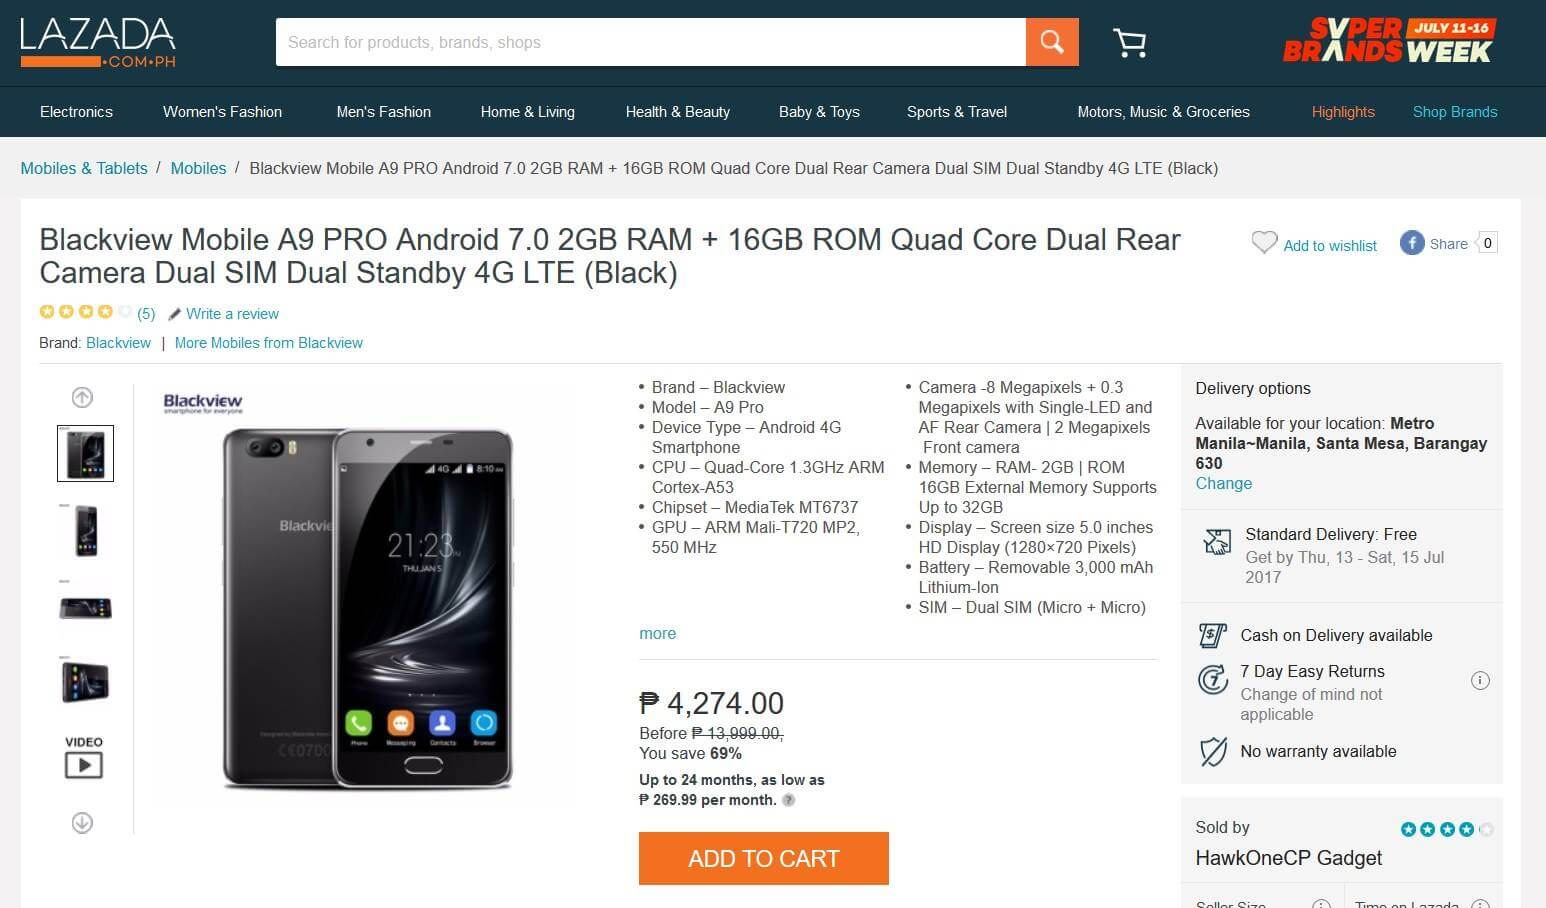 Blackview A9 Pro Listing in Lazada